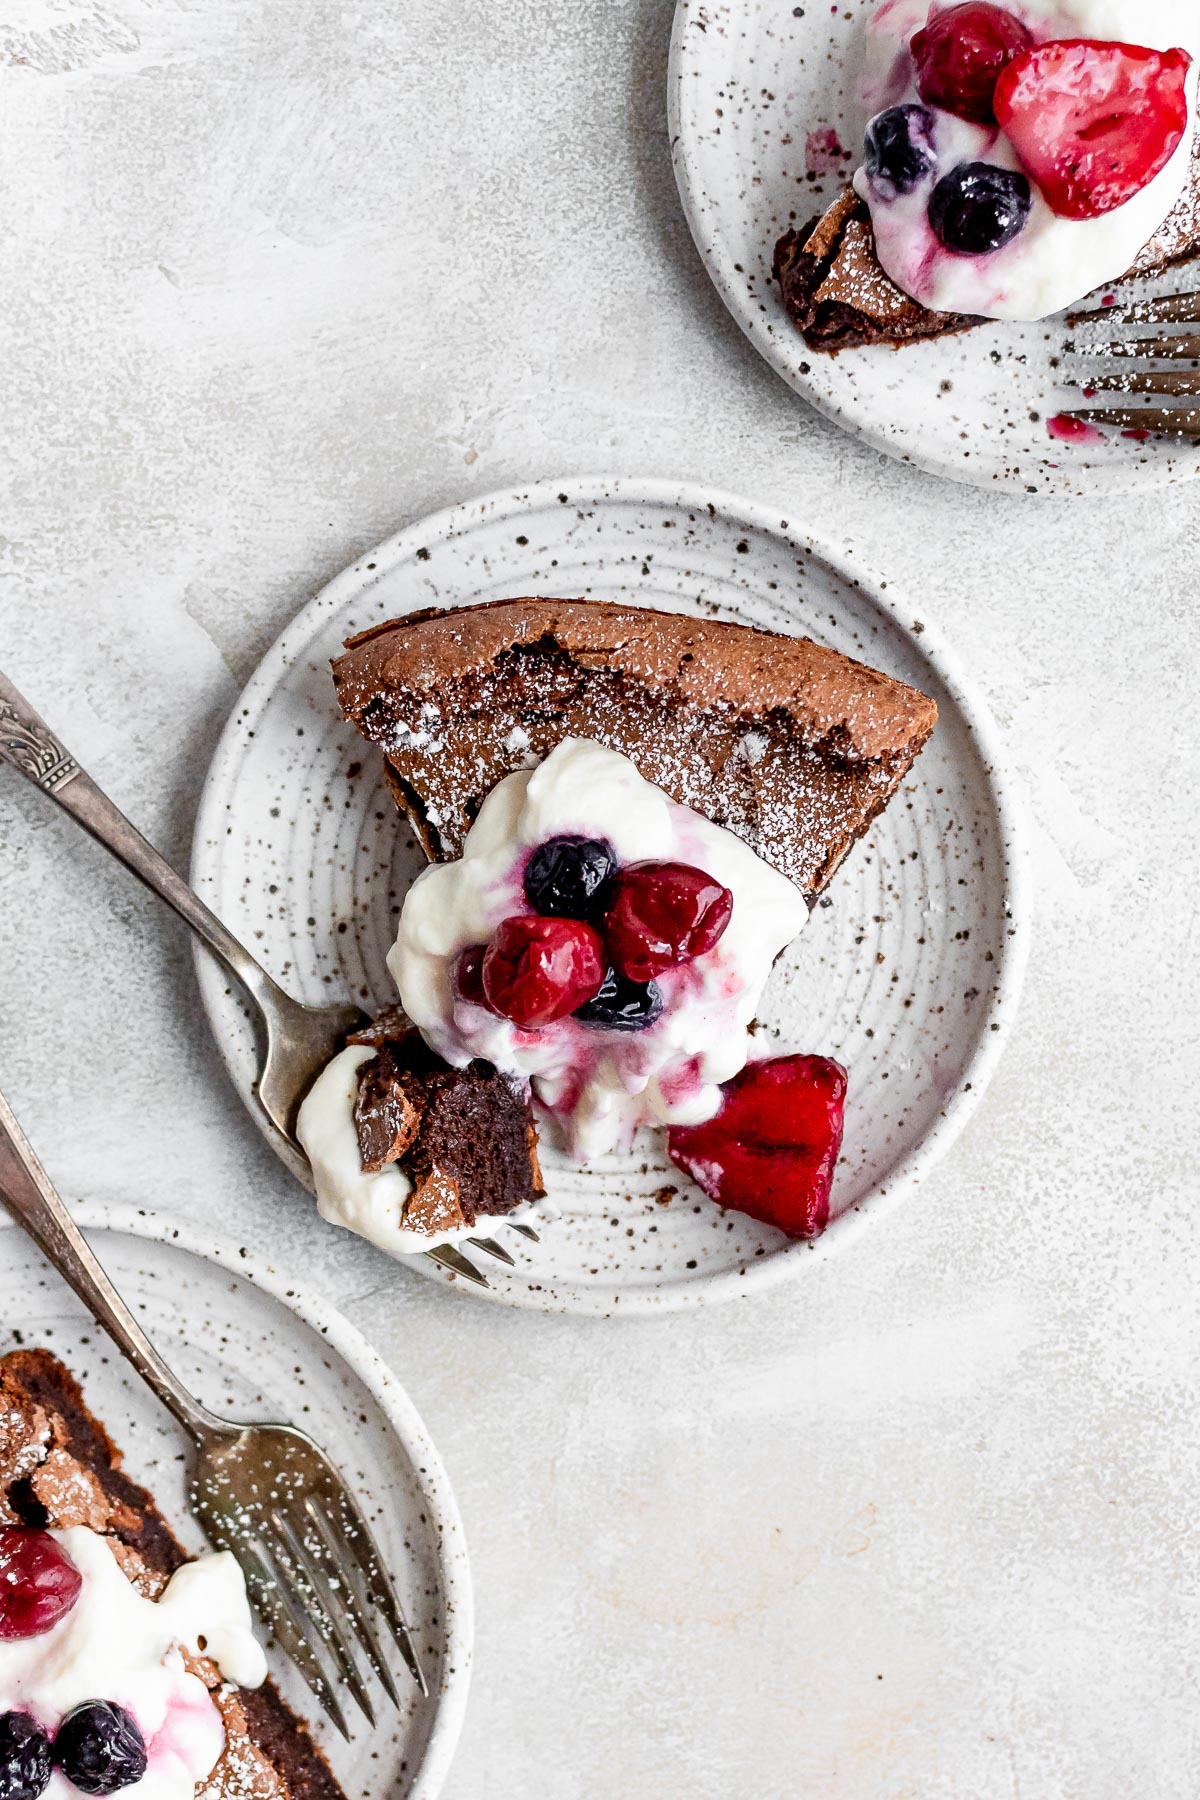 slice of cake on white plate topped with whipped cream and berries